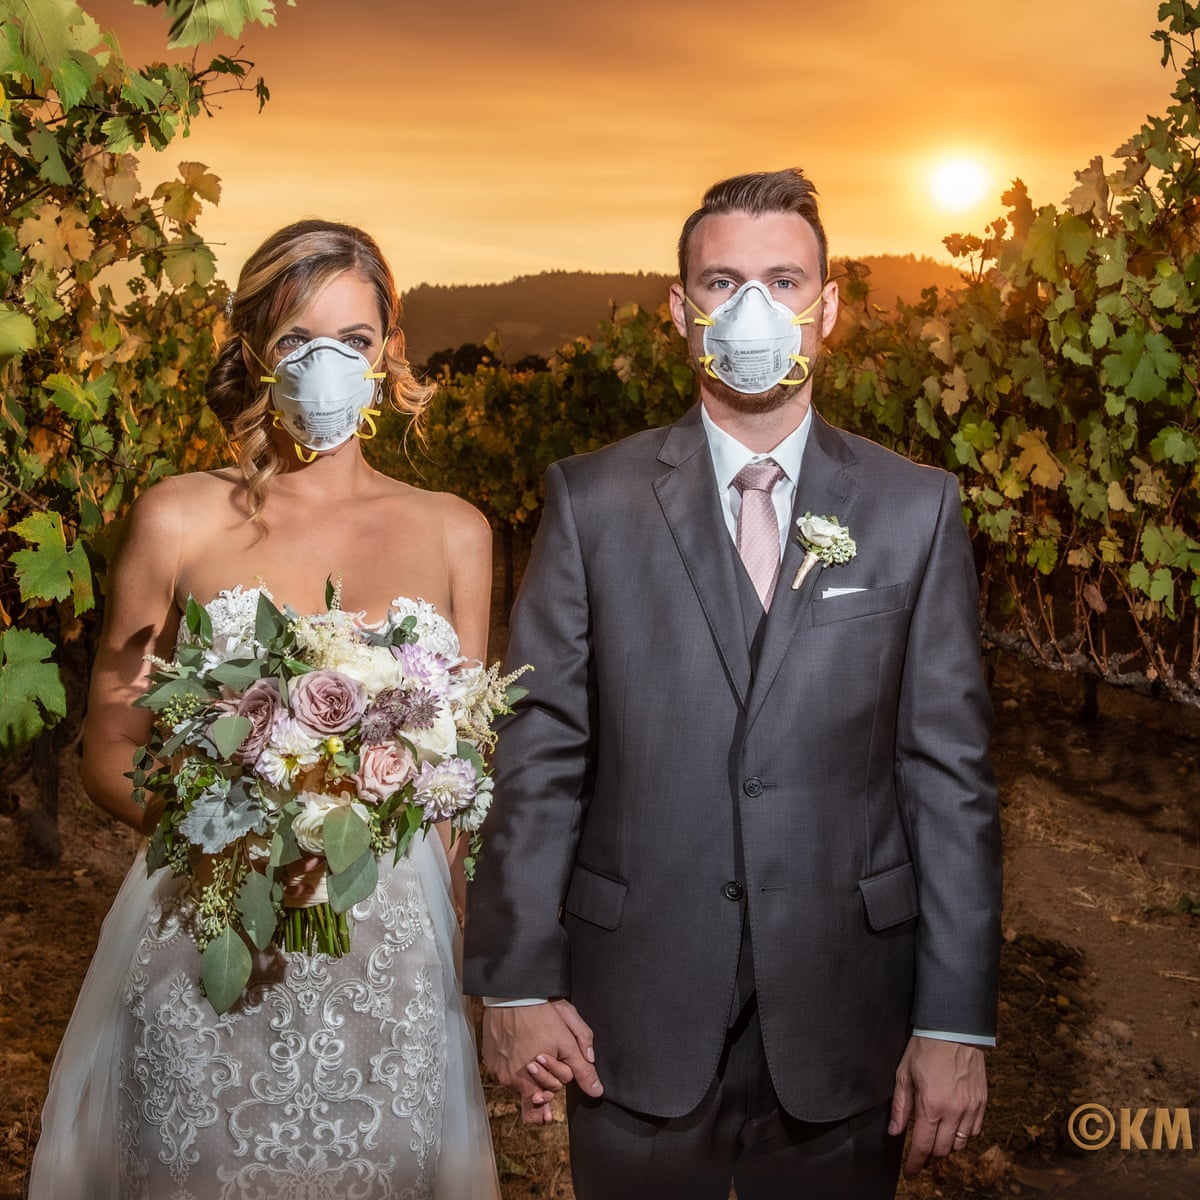 Wildfire Wedding Couple Wear Protective Masks In Viral California Photo California The Guardian